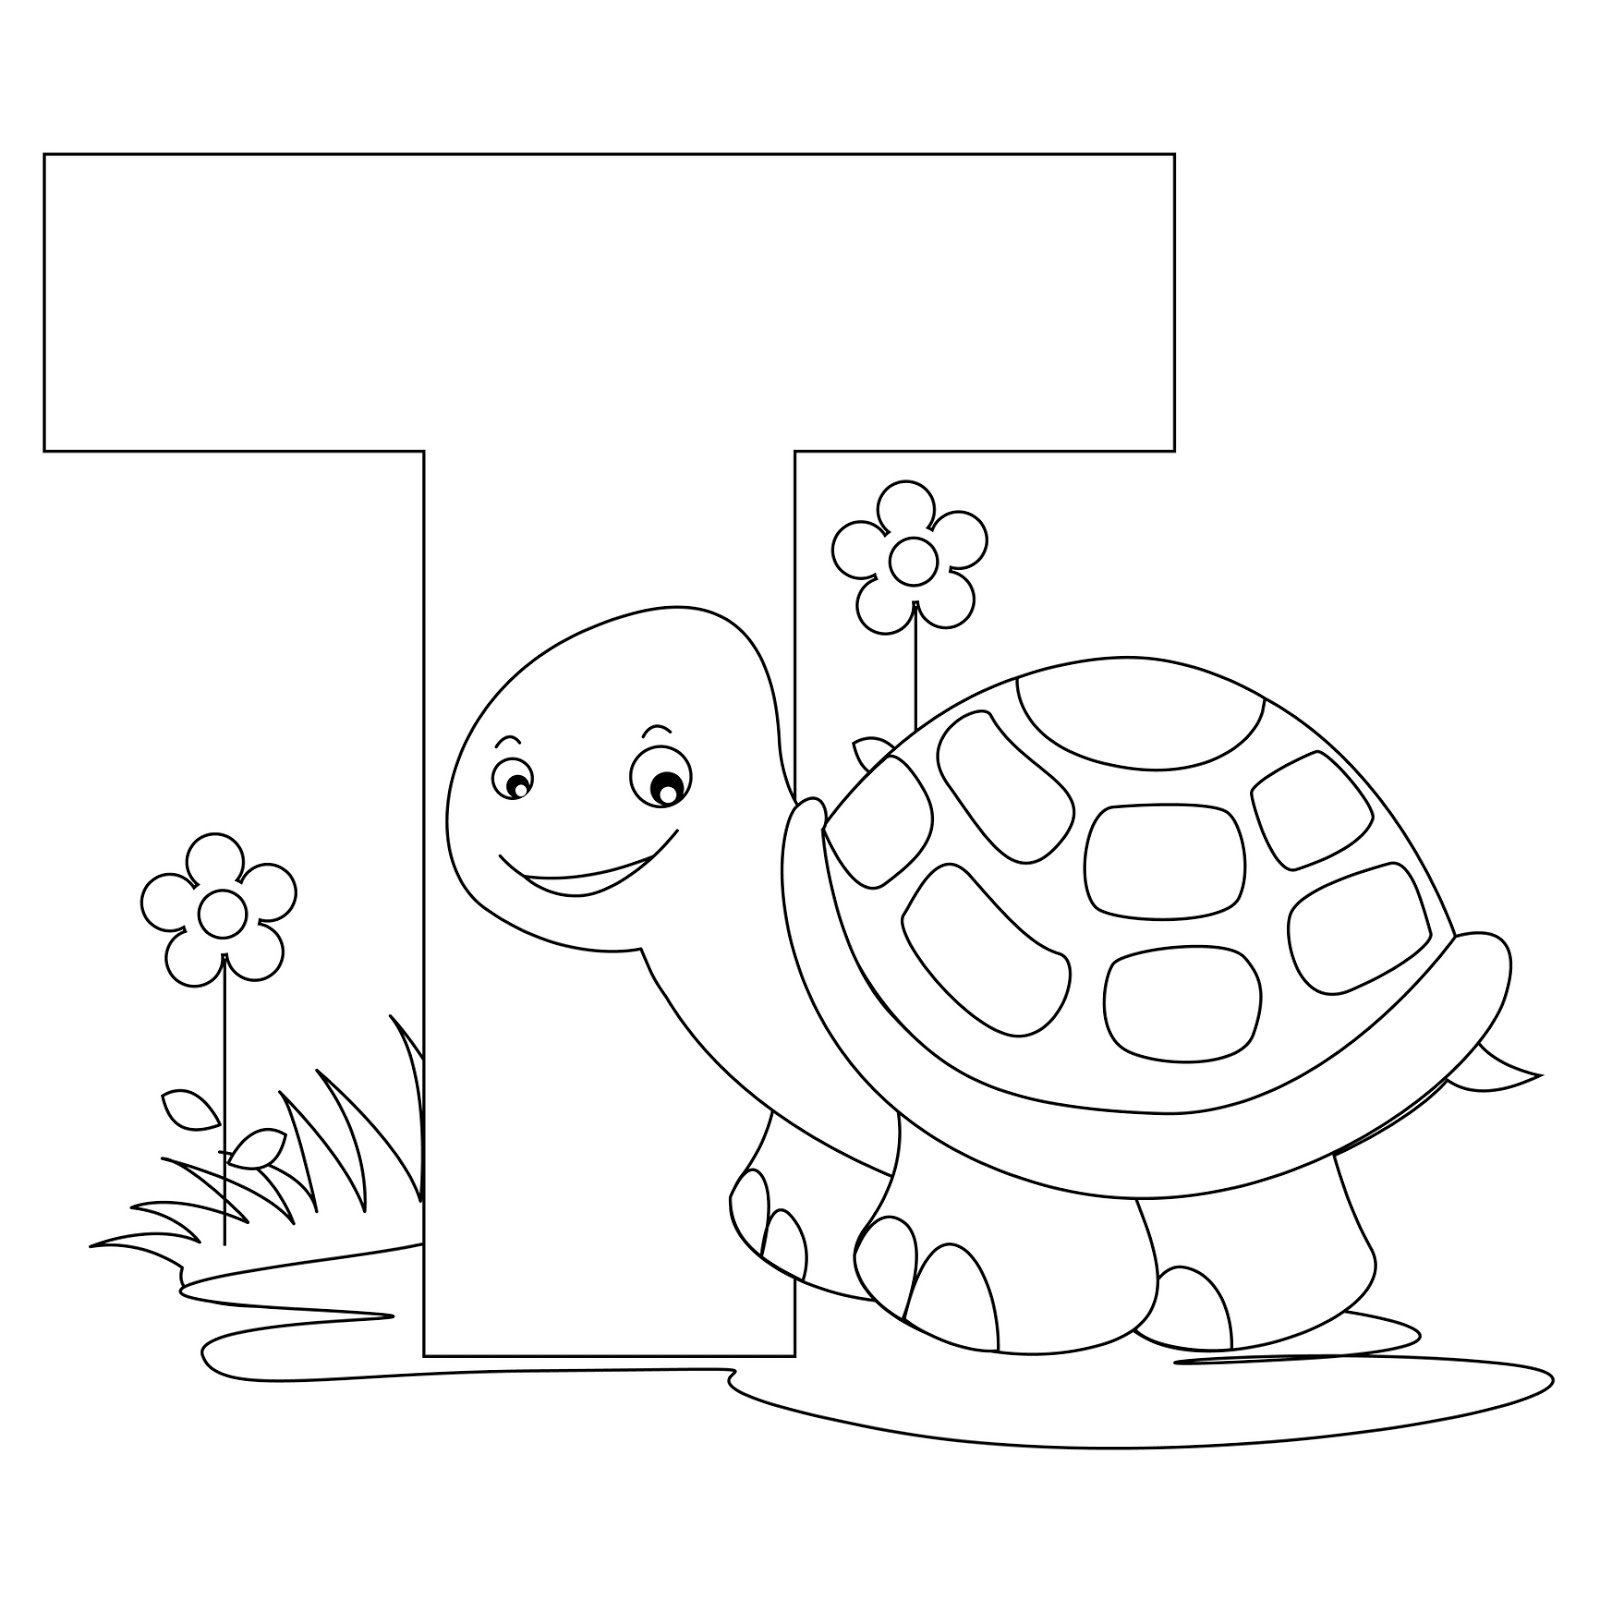 Animal Alphabet Coloring Pages Printable : Animal alphabet letter t coloring turtle